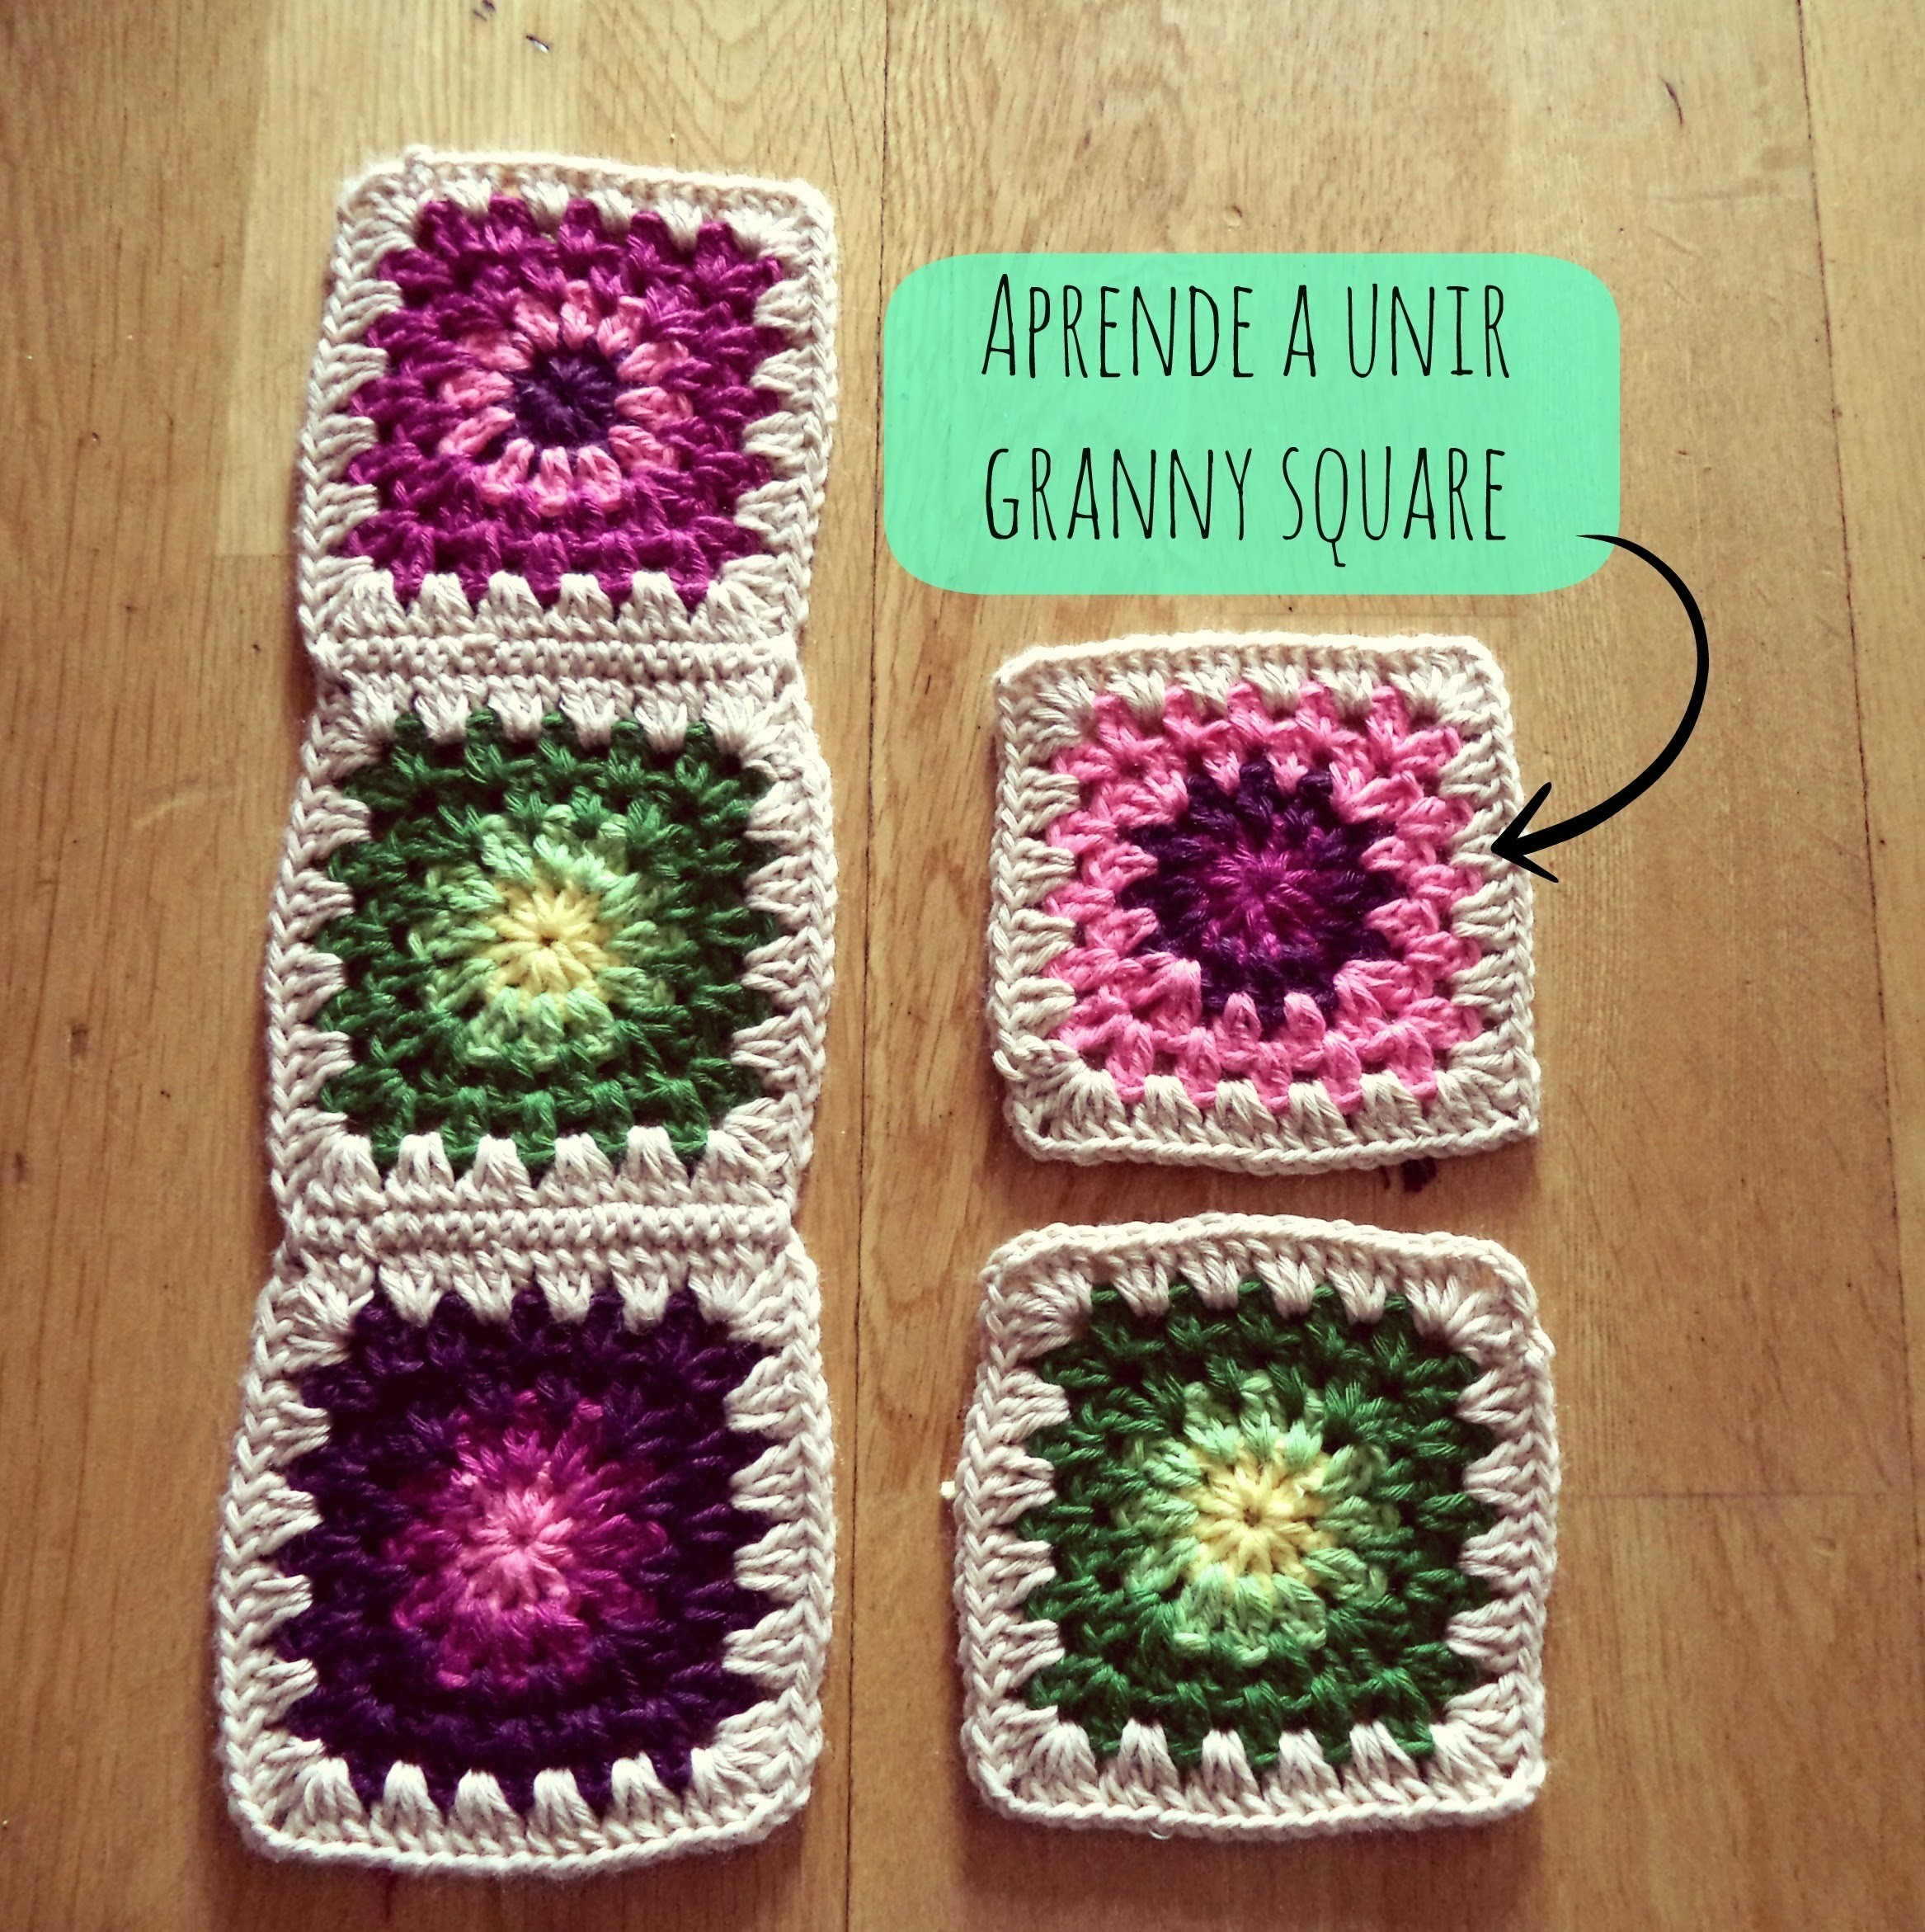 Cómo unir granny square - How to join granny square